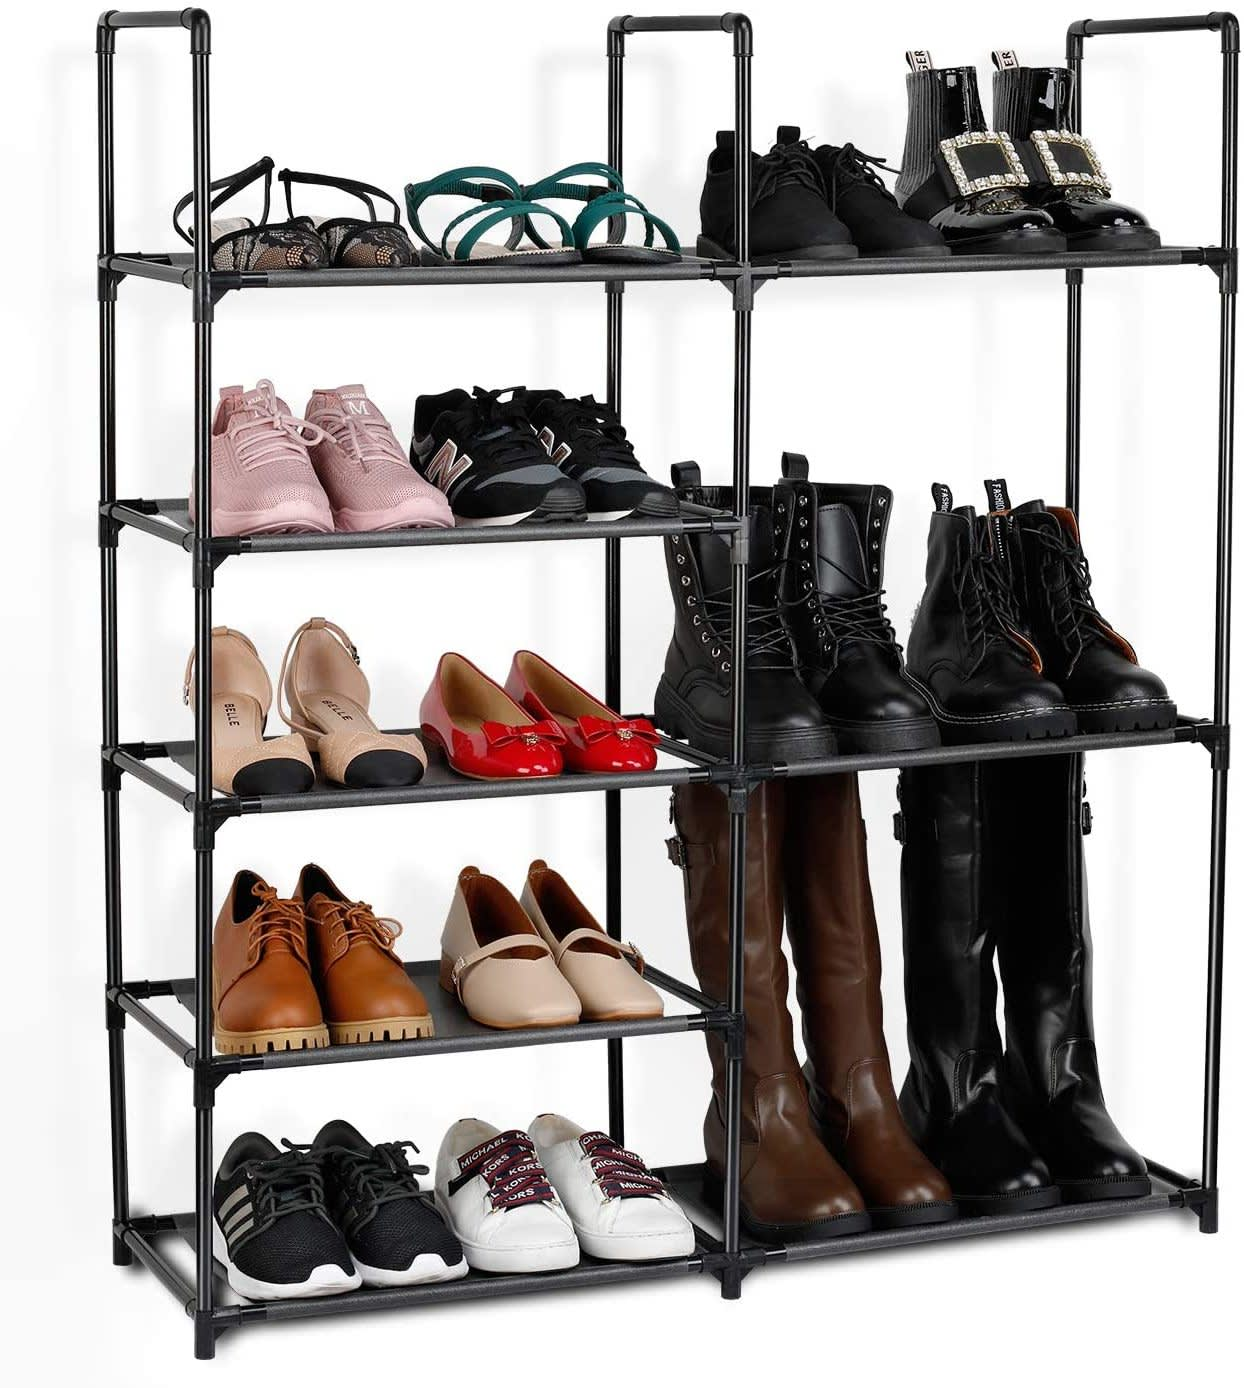 Jakpas 5-Tier Shoe Rack Storage Organizer